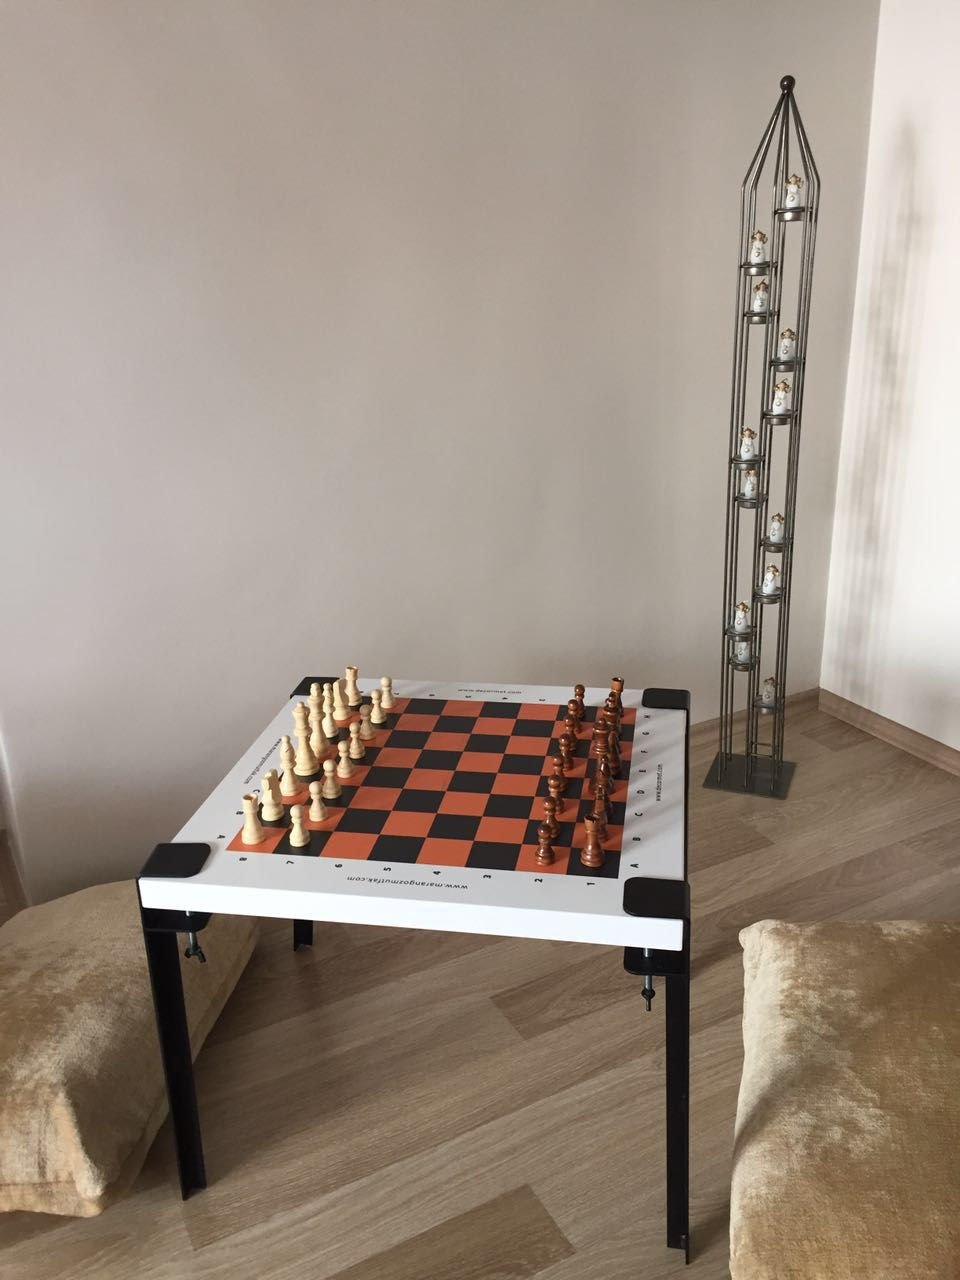 LaModaHome Modern Style Coffee Table White Plaid Modern Game Table Wooden Resistant Chess Cocktail Table with Storage Best Choice for Quality for Home, Office, Living Room and More